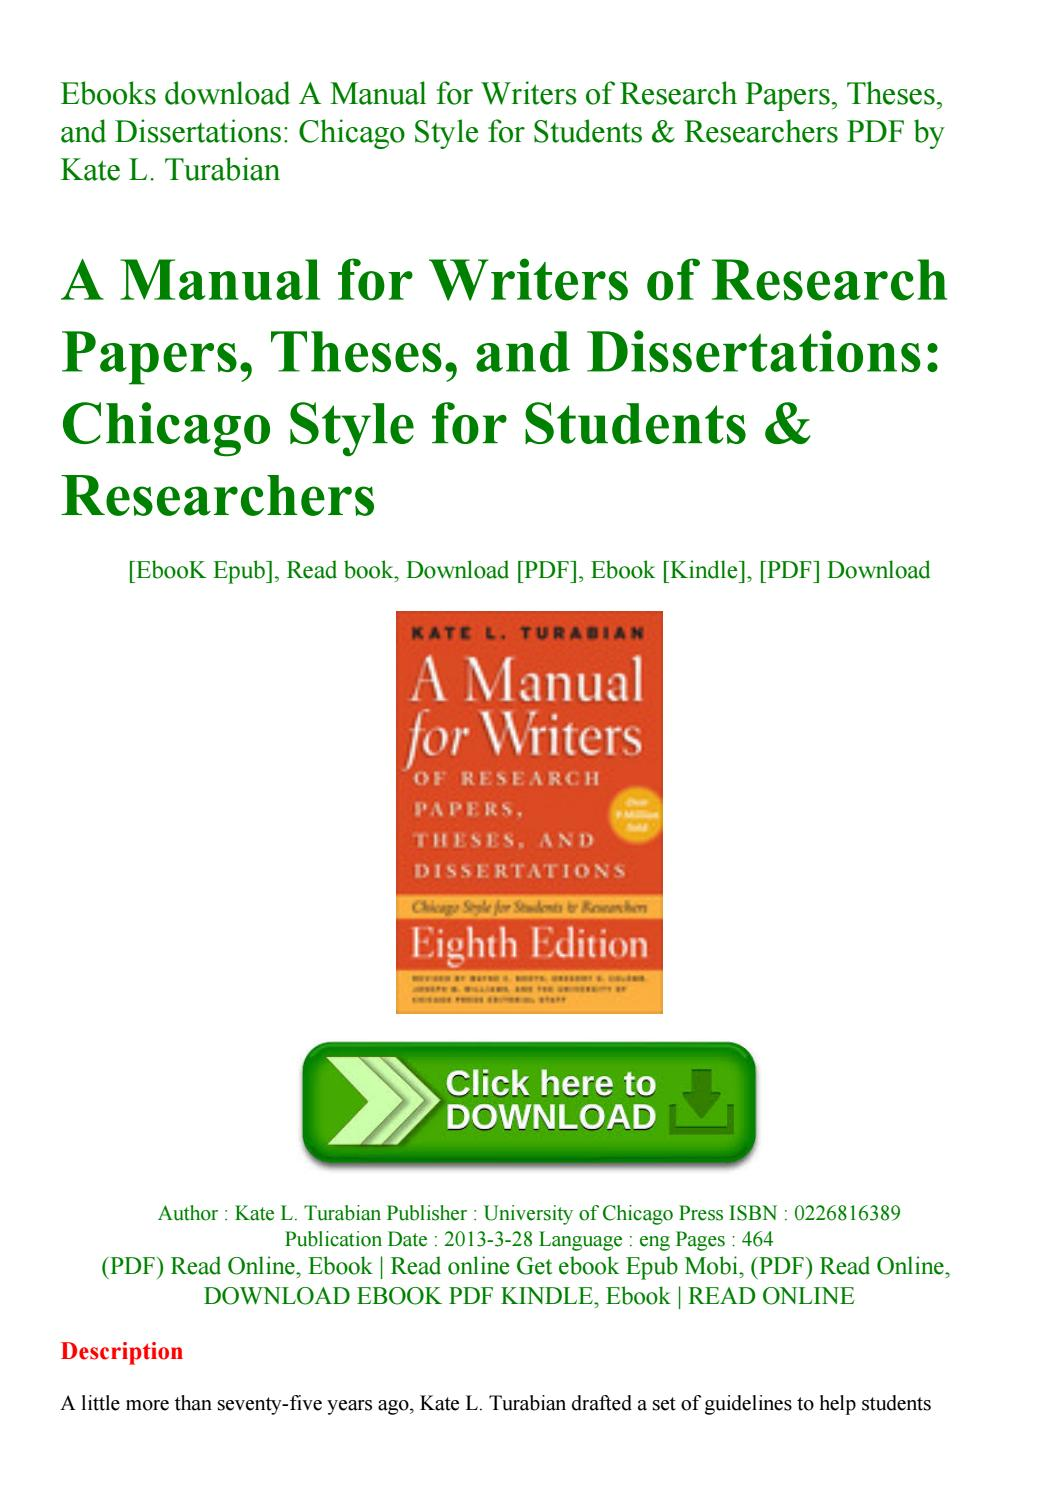 003 Research Paper Manual For Writers Of Papers Theses And Dissertations Download Page 1 Rare A Pdf Full